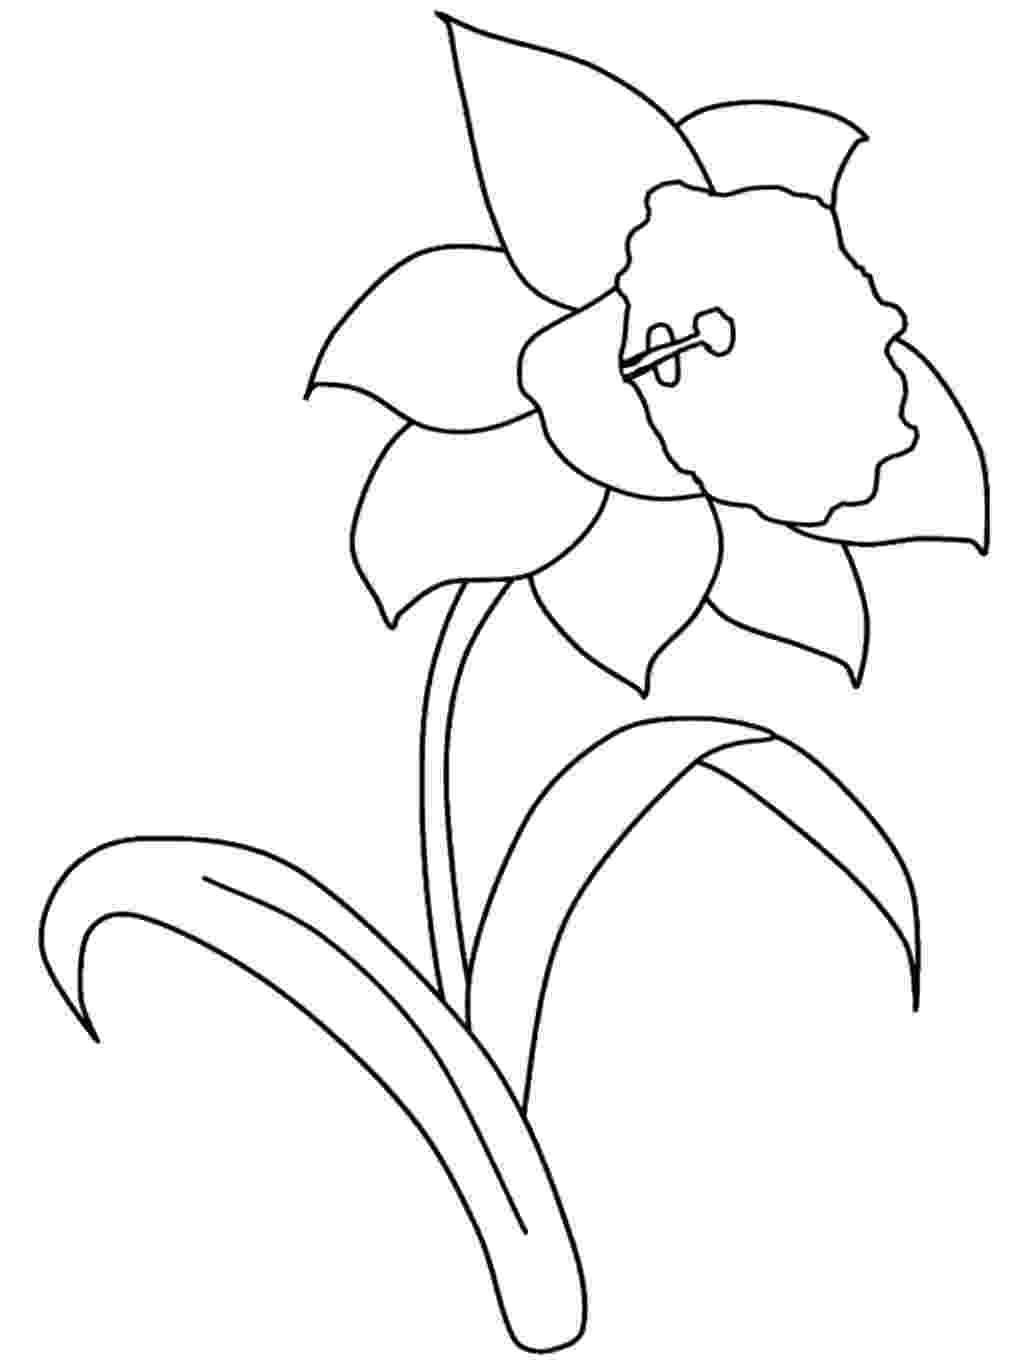 pictures of daffodils to color daffodil coloring pages download and print daffodil color to pictures daffodils of